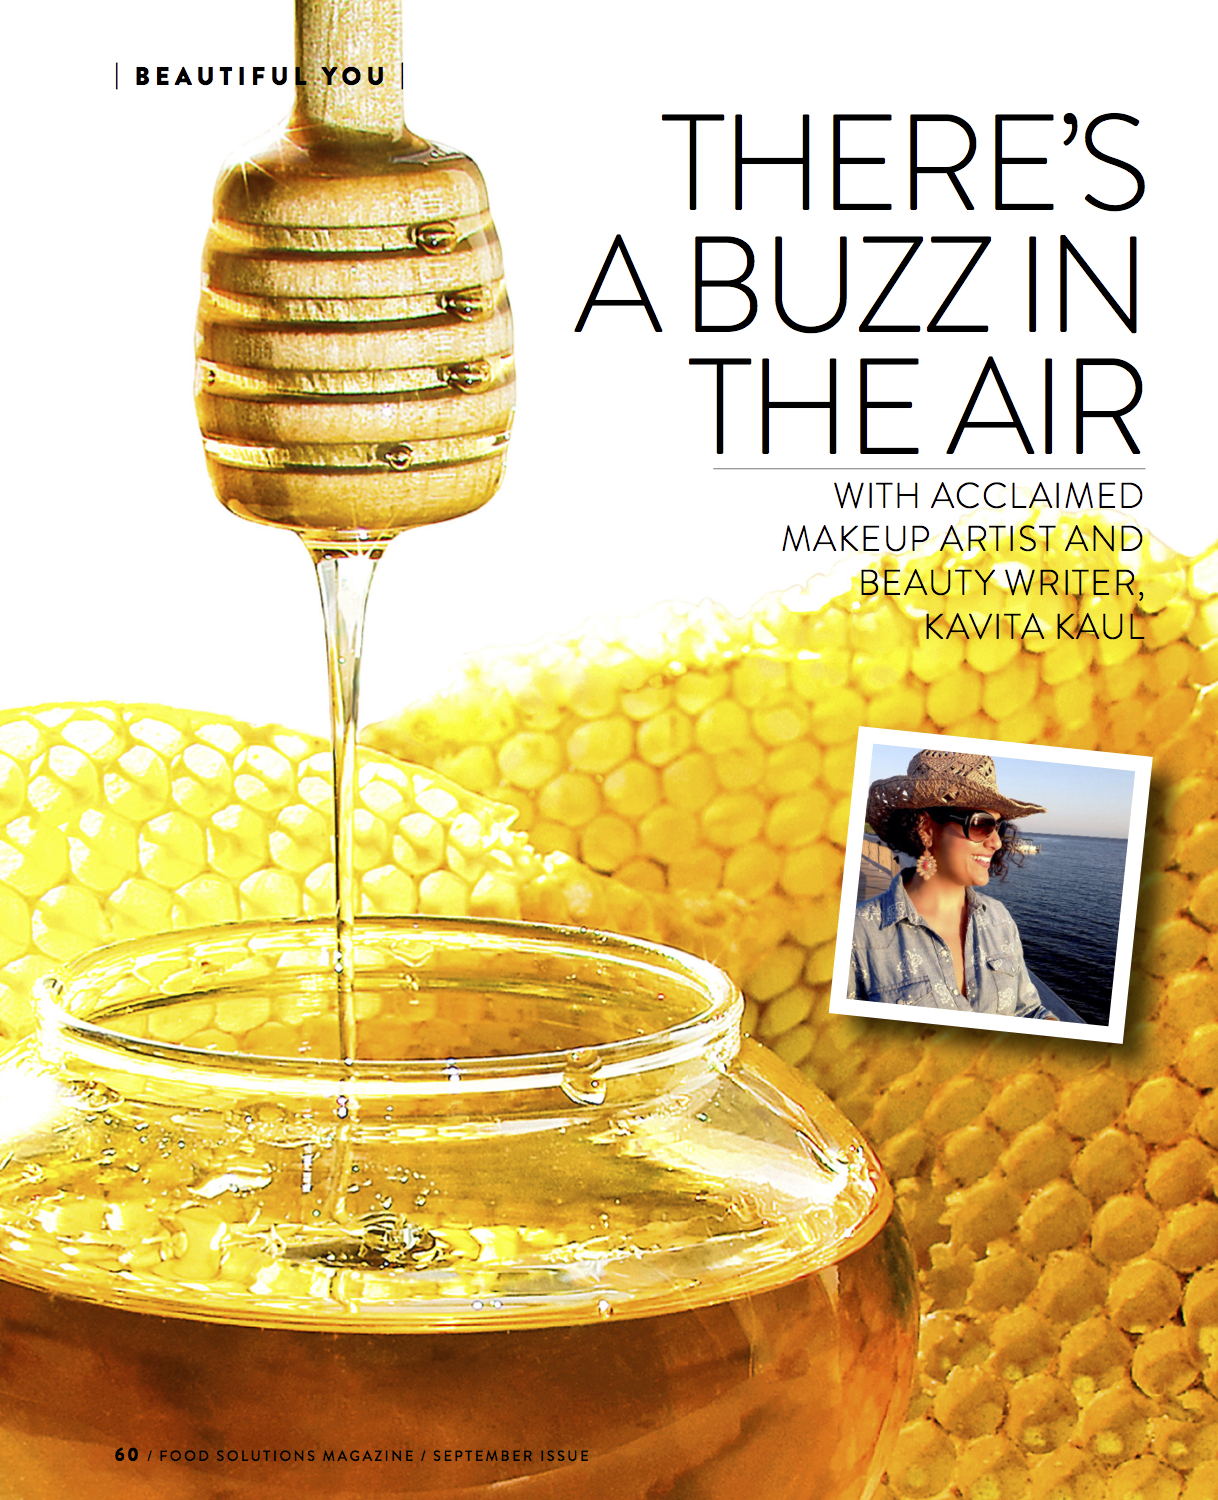 New York Honey Festival by Kavita Kaul for Food Solutions Magazine